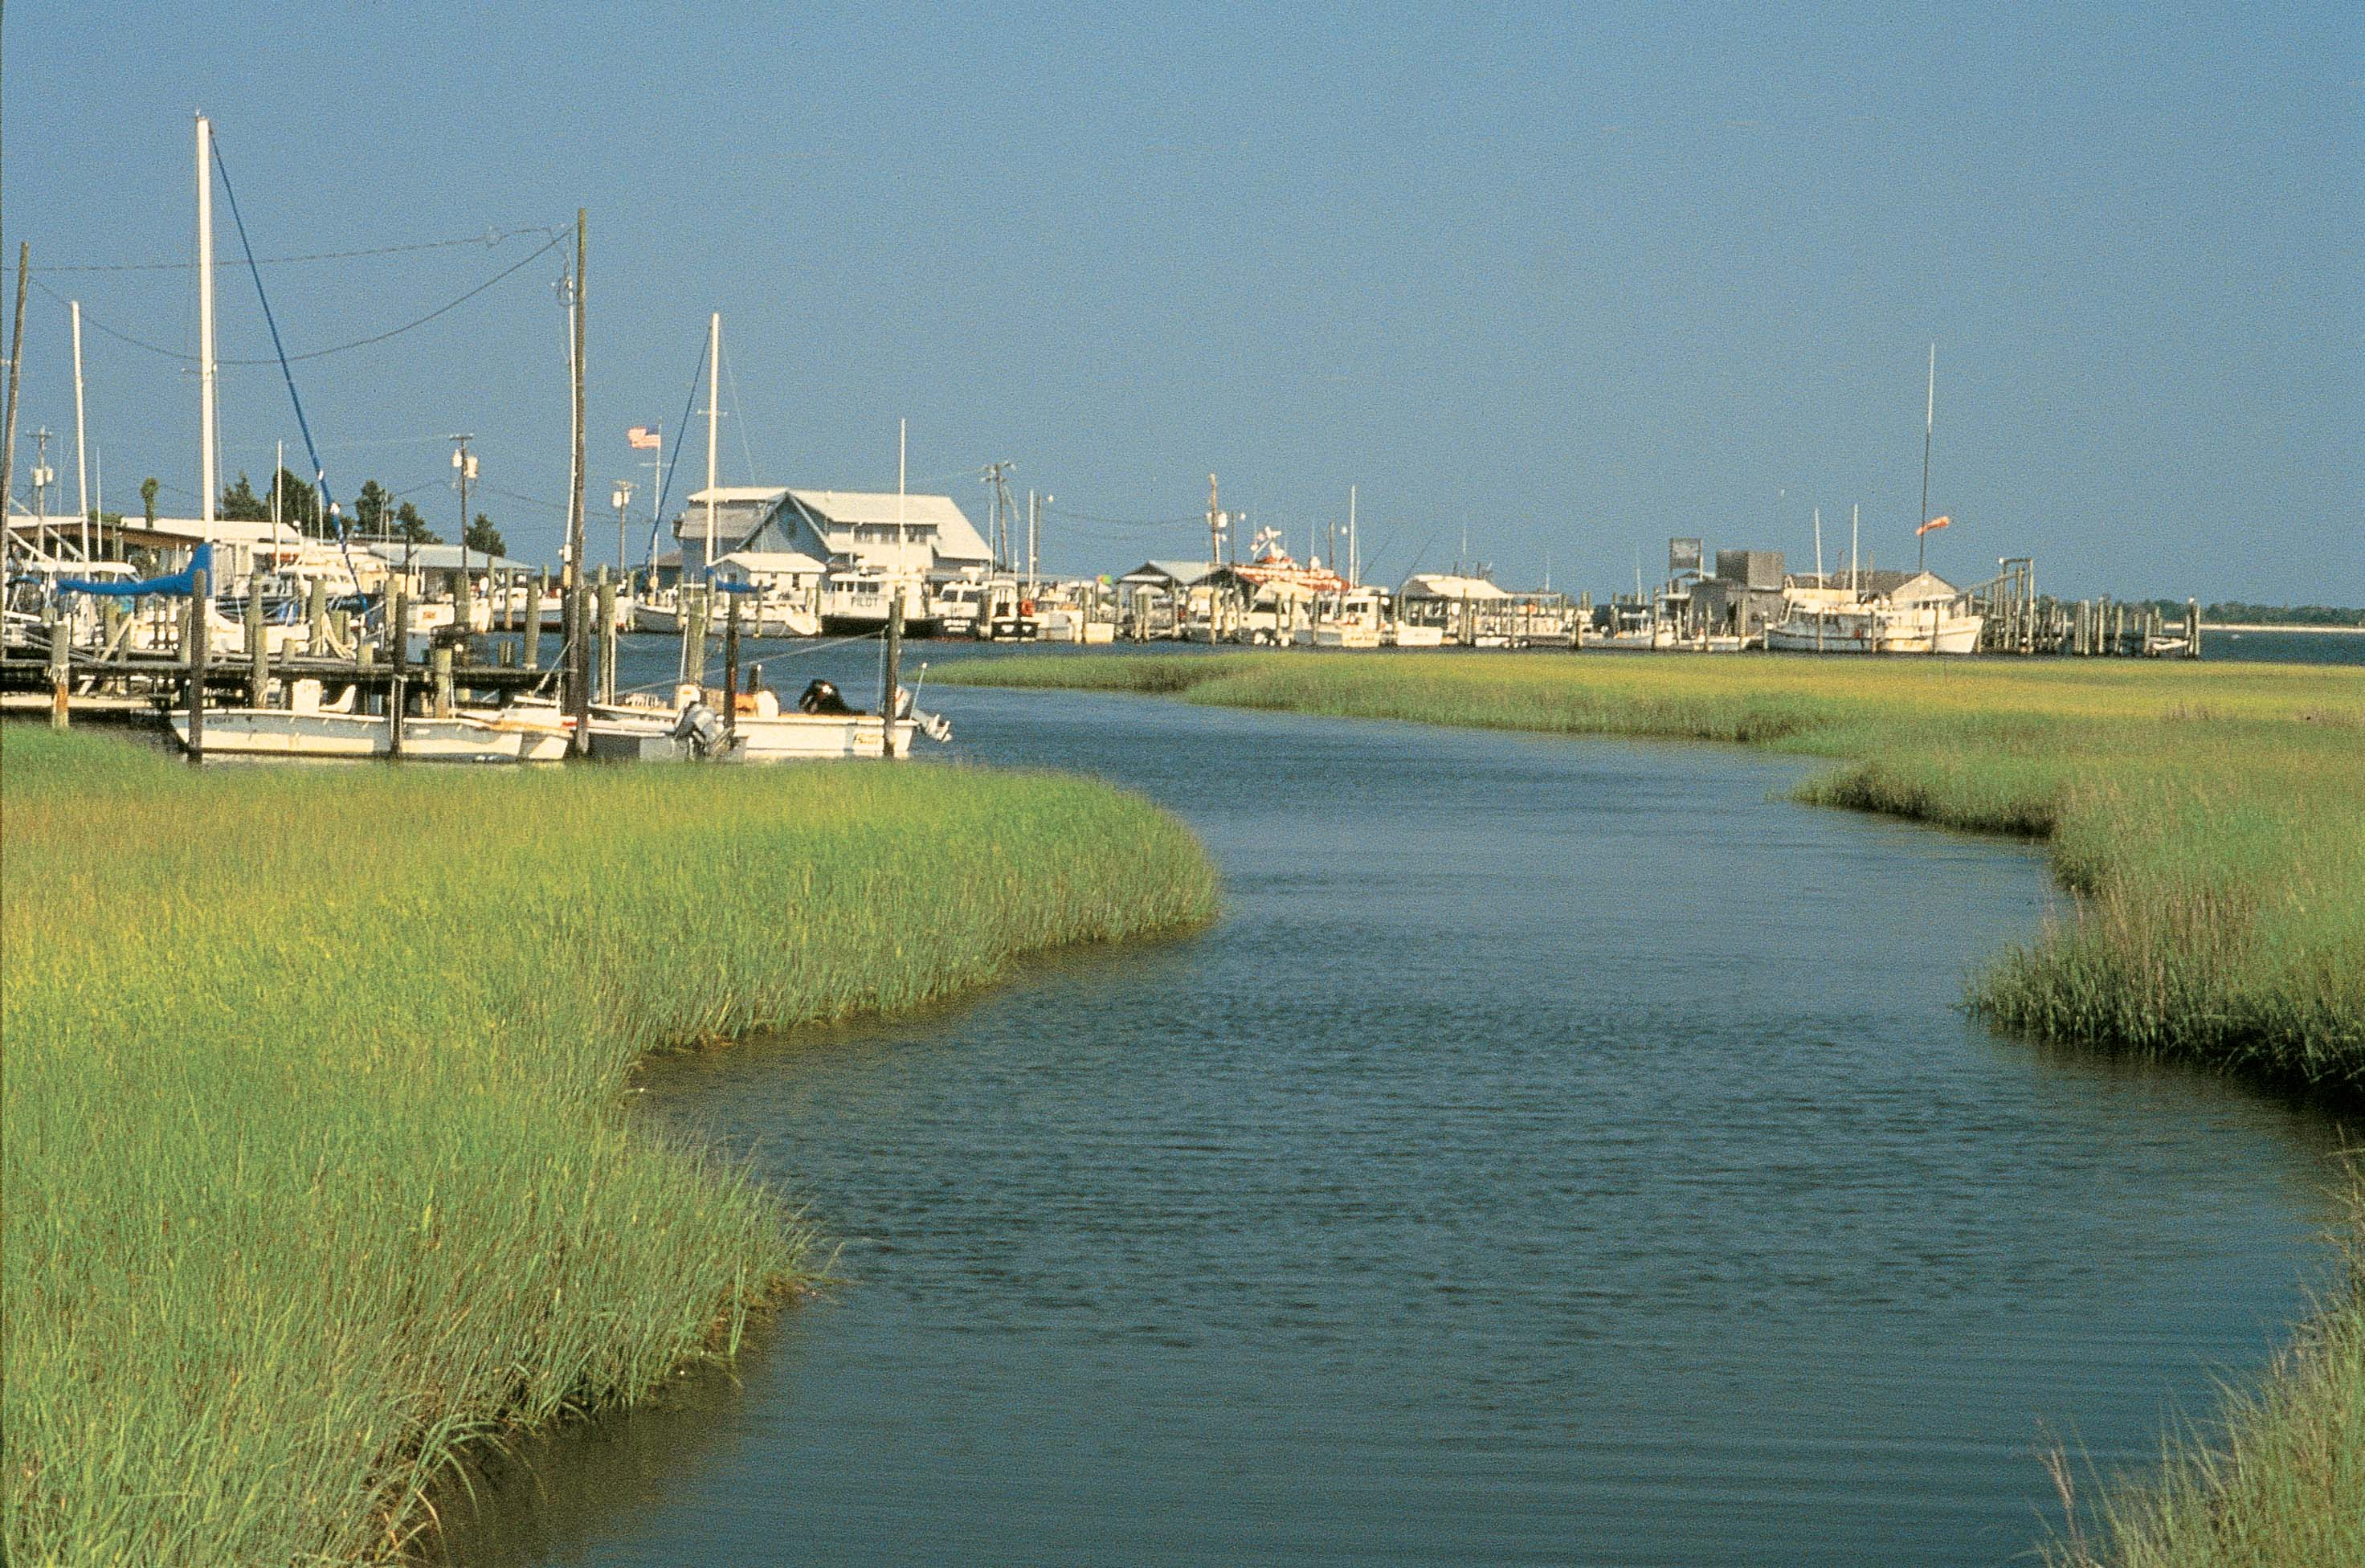 March madness vs marsh madness north carolinas brunswick kayakers and boaters can visit southport ncs yacht basin for delicious seafood diningsouthport nc via the waterways publicscrutiny Images